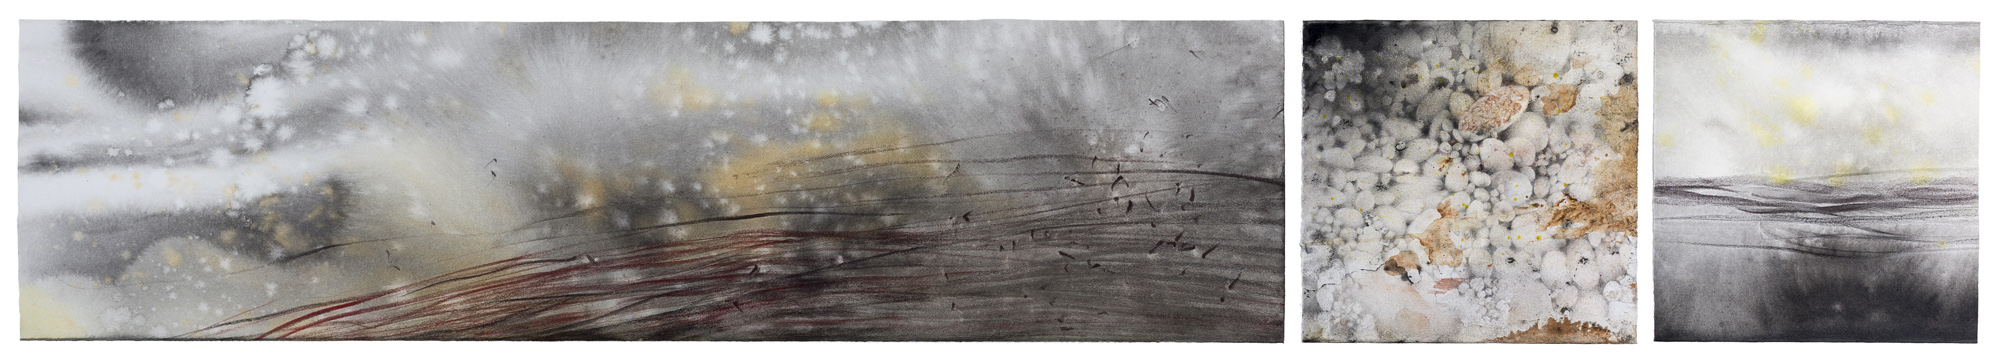 River Stones, ink, pastel and graphite on paper, 20 x 120 cm, 2013 (photo by Dean Butters)